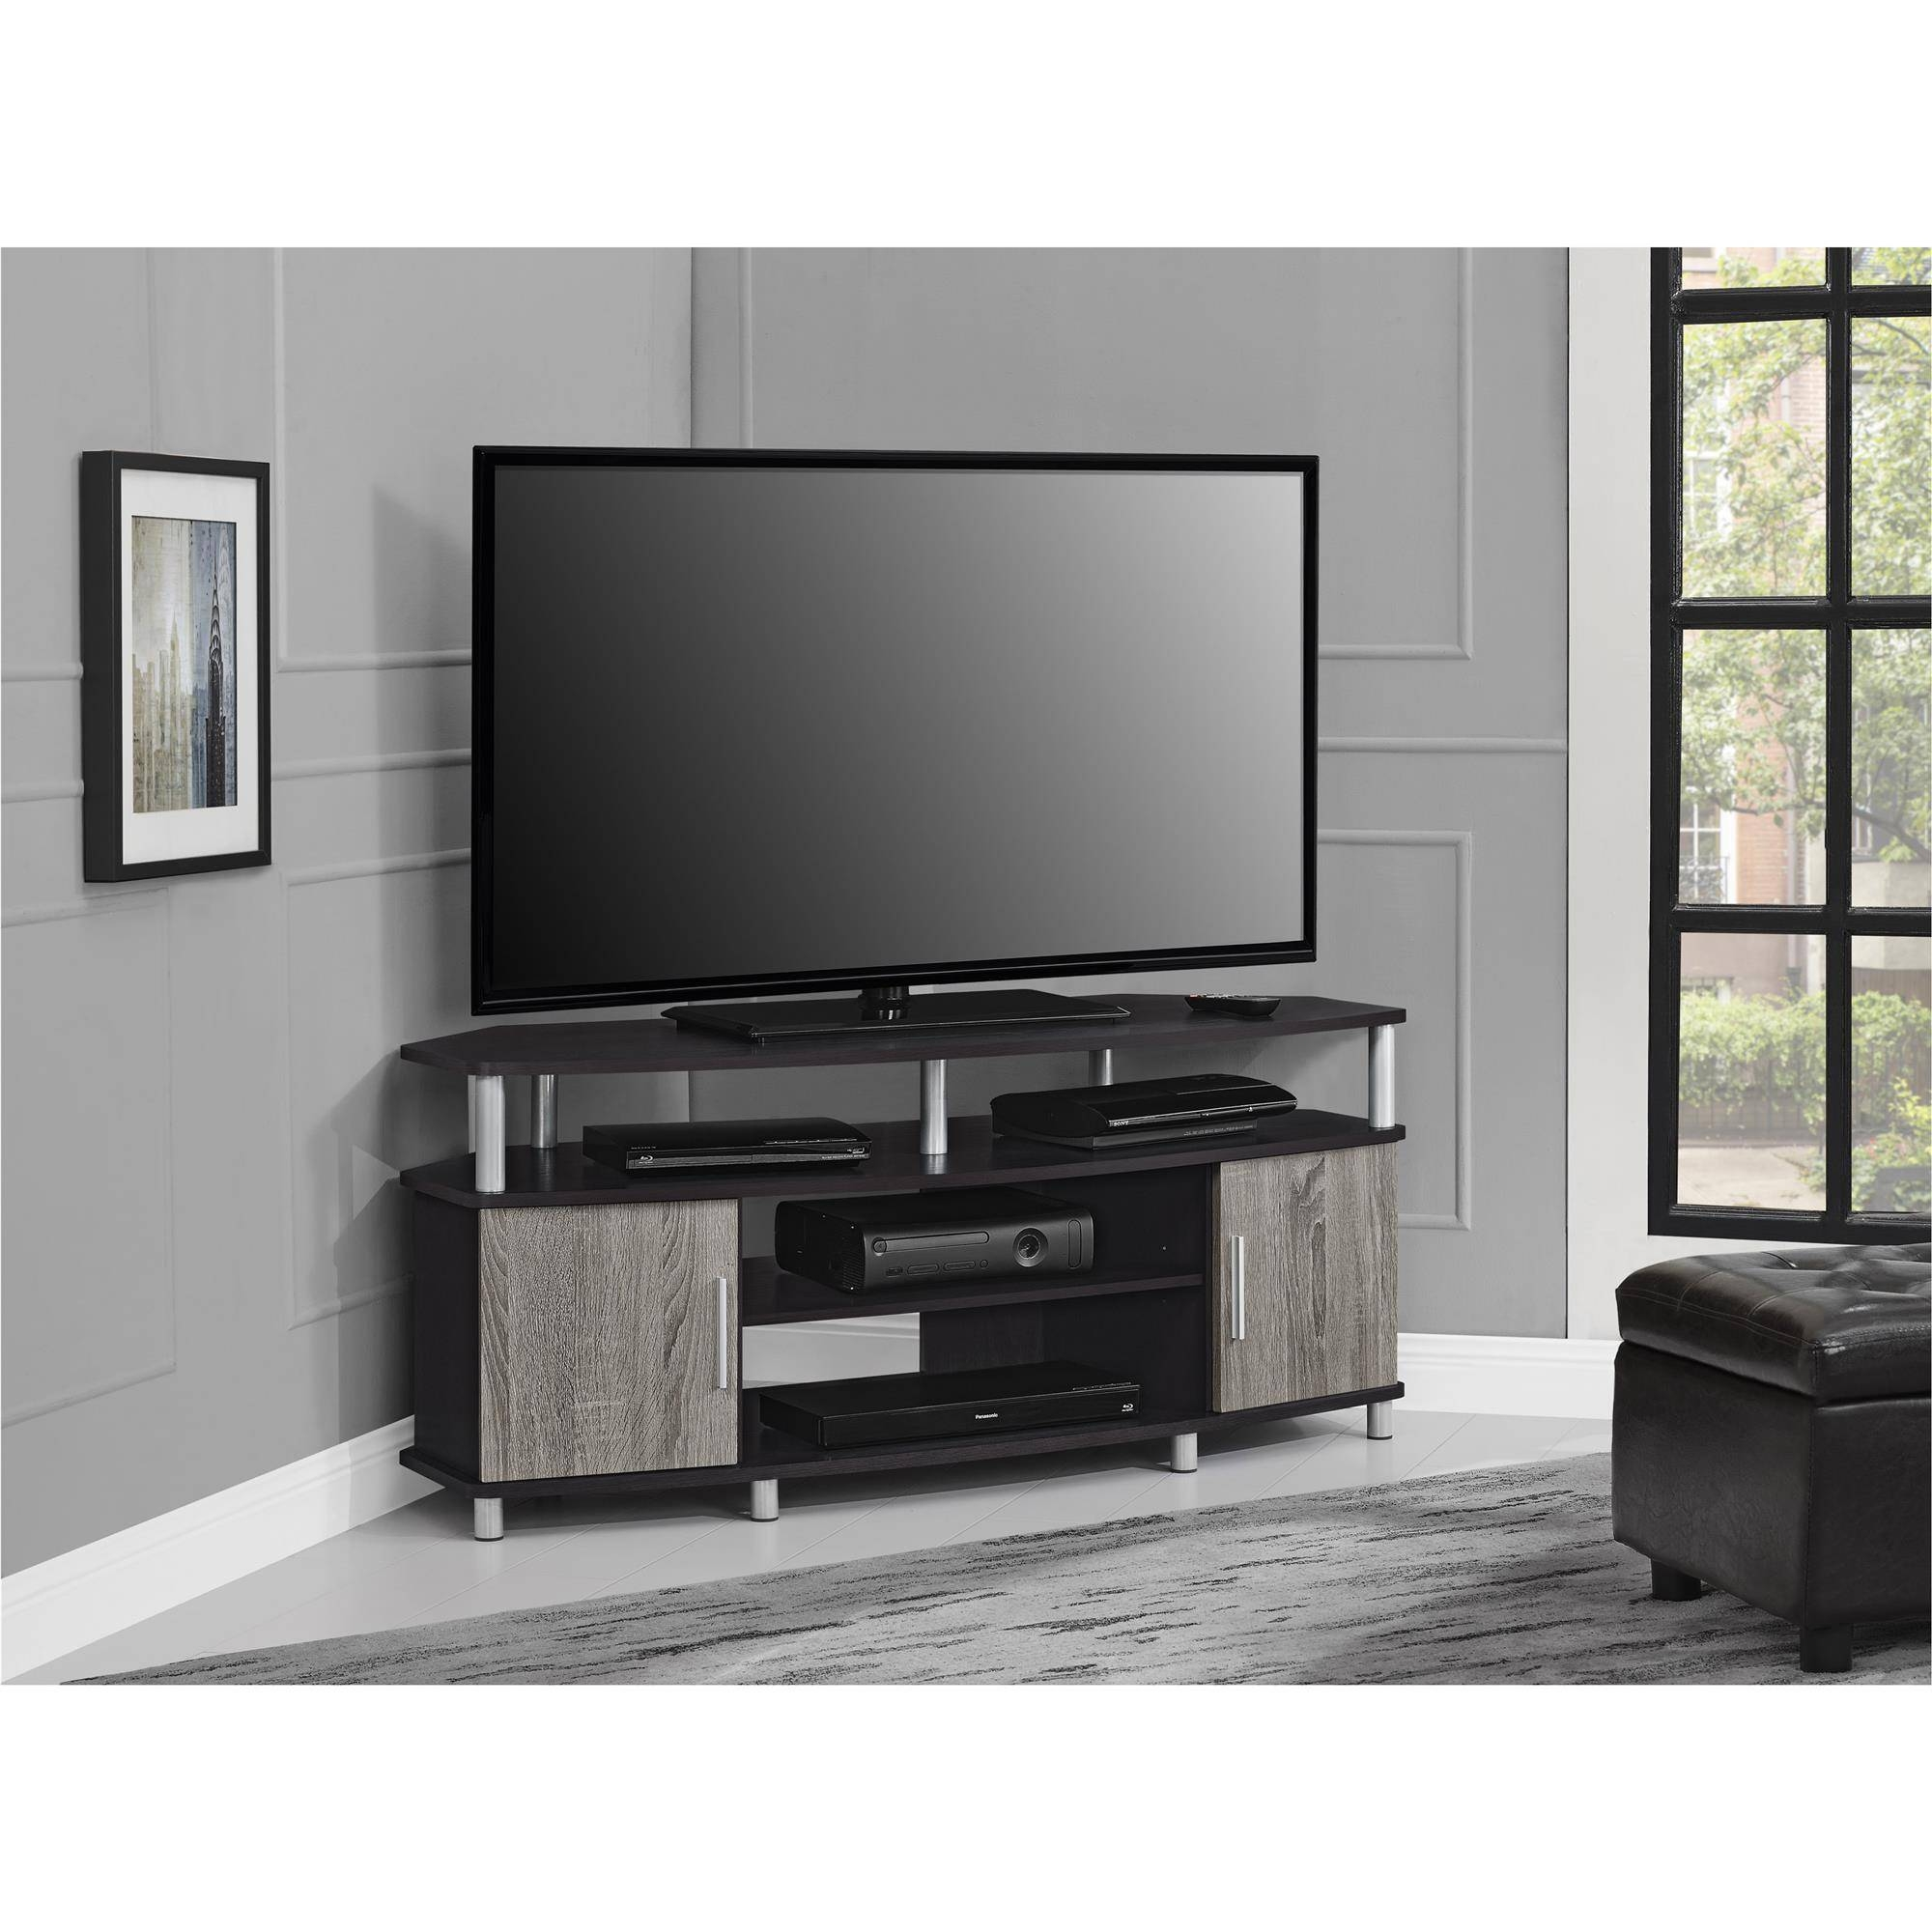 Ameriwood Furniture | Carson Corner Tv Stand For Tvs Up To 50 With Regard To 50 Inch Corner Tv Cabinets (View 2 of 15)